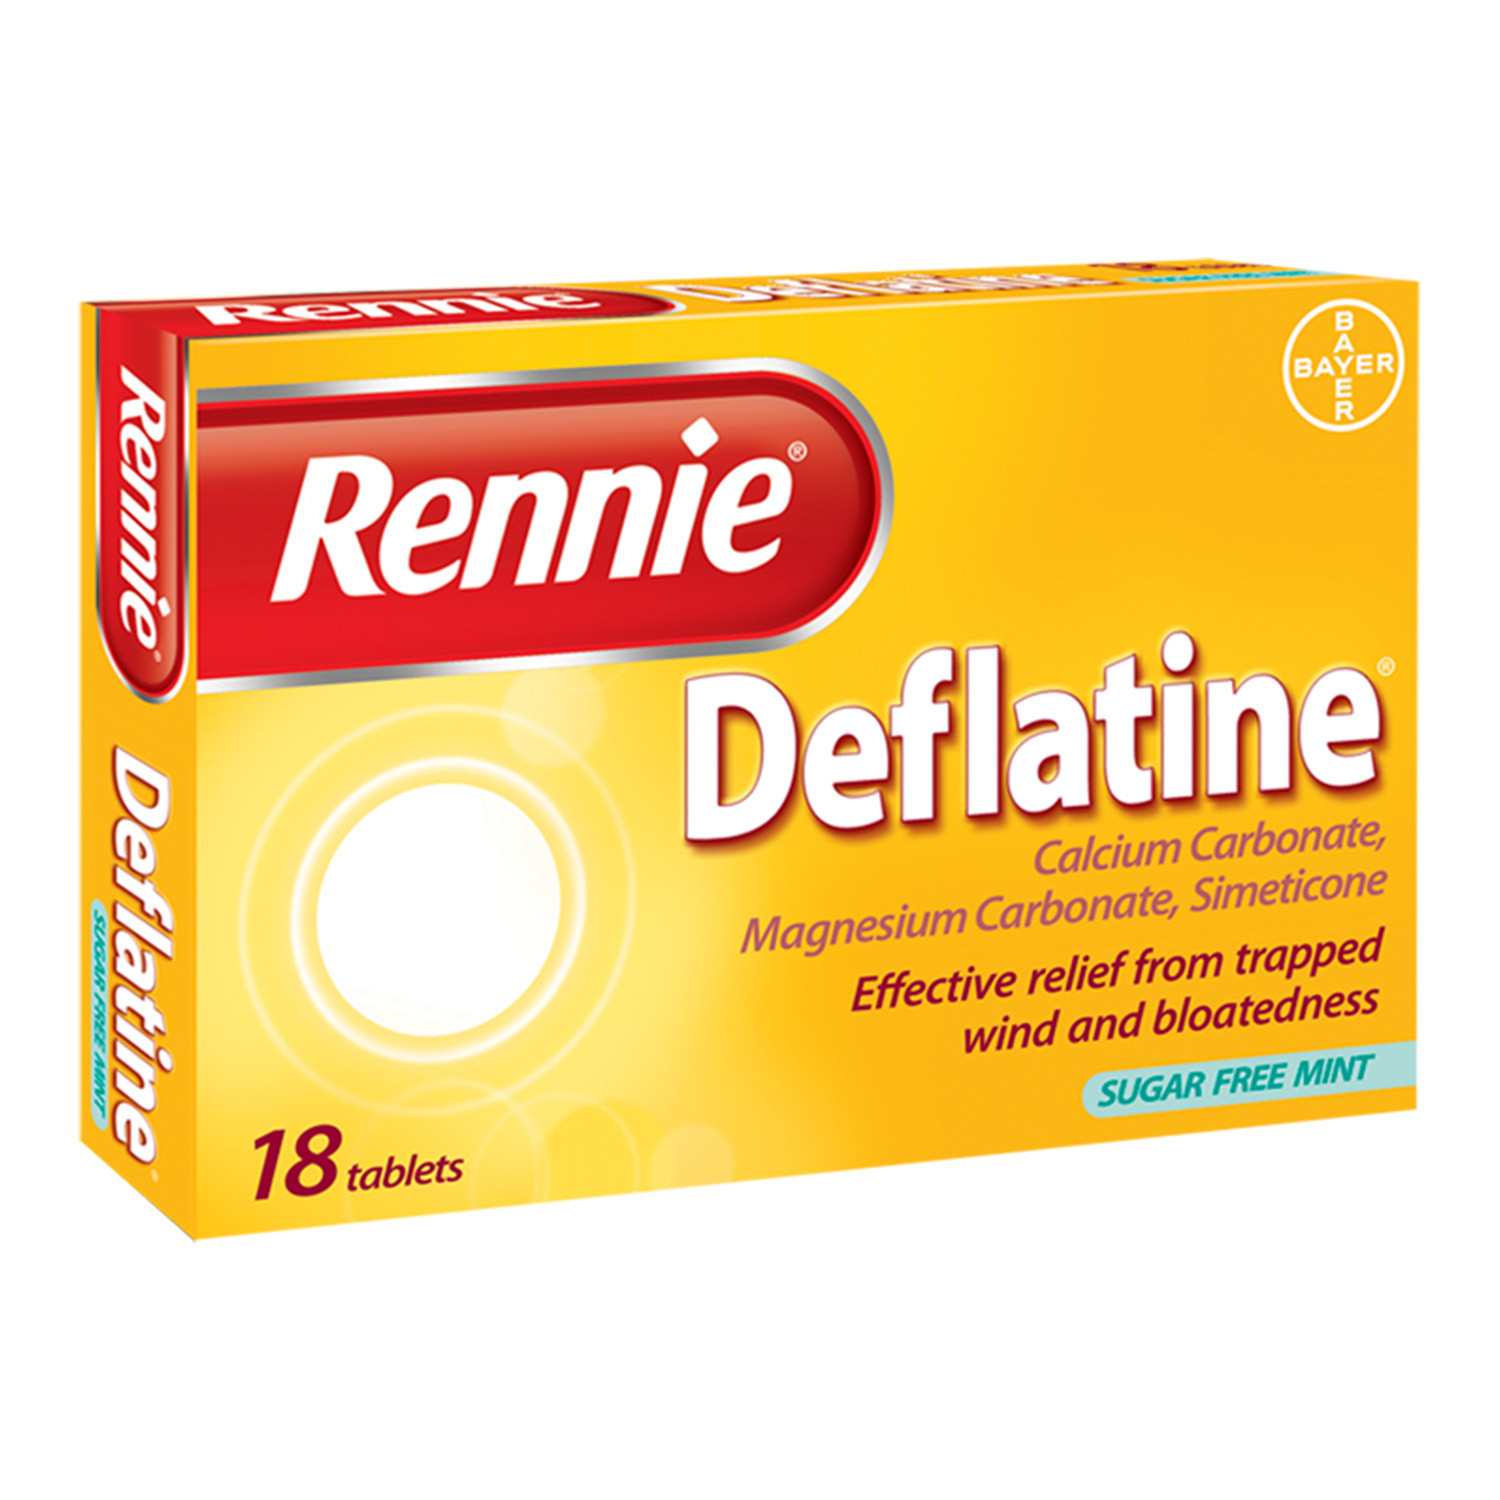 Deflatine Heartburn Indigestion & Trapped Wind Relief